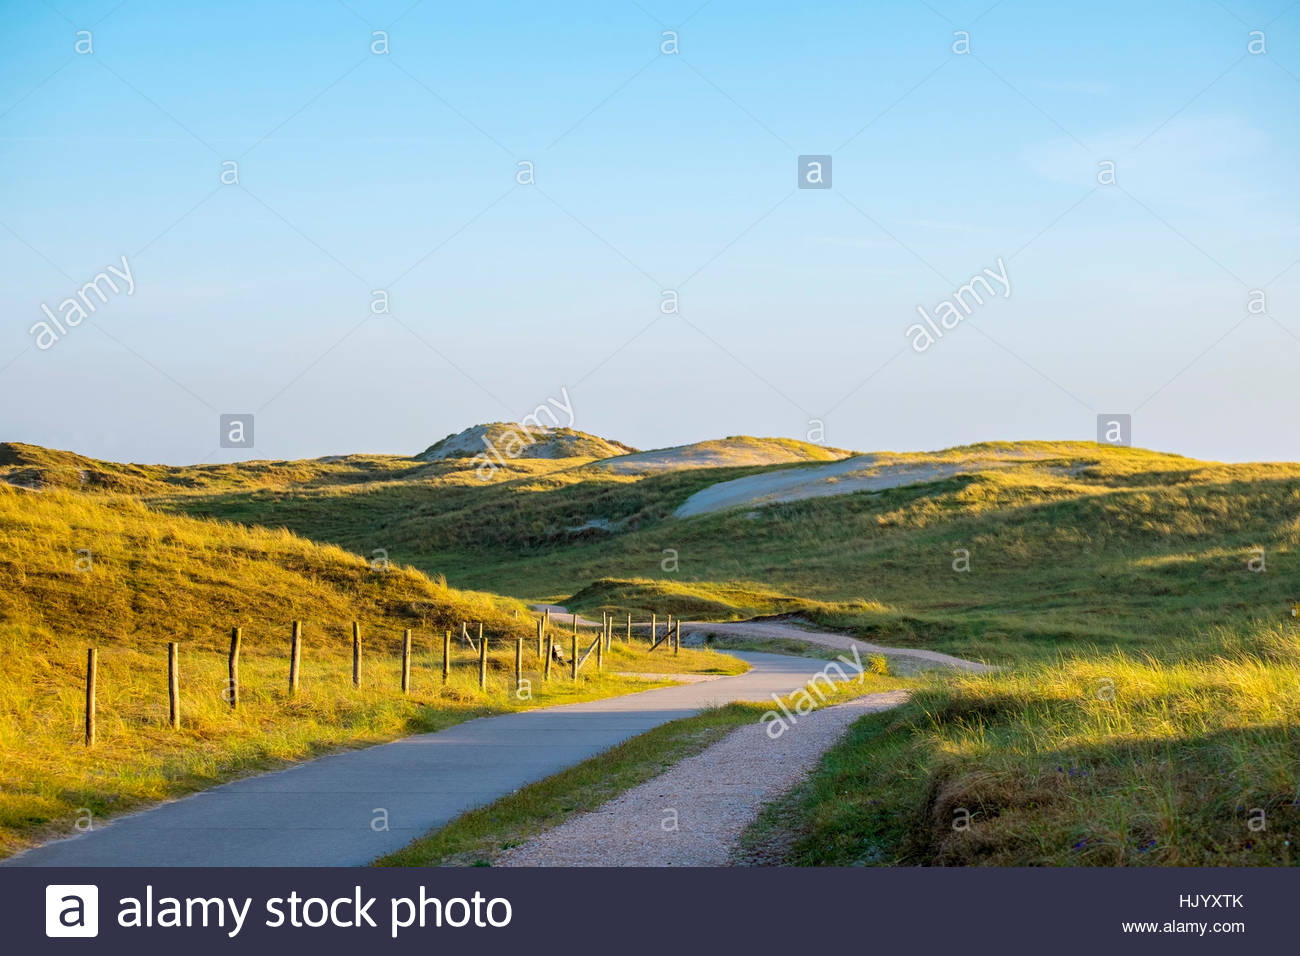 Netherlands, North Holland, Julianadorp. Bicycle and walking paths through the dunes. - Stock Image